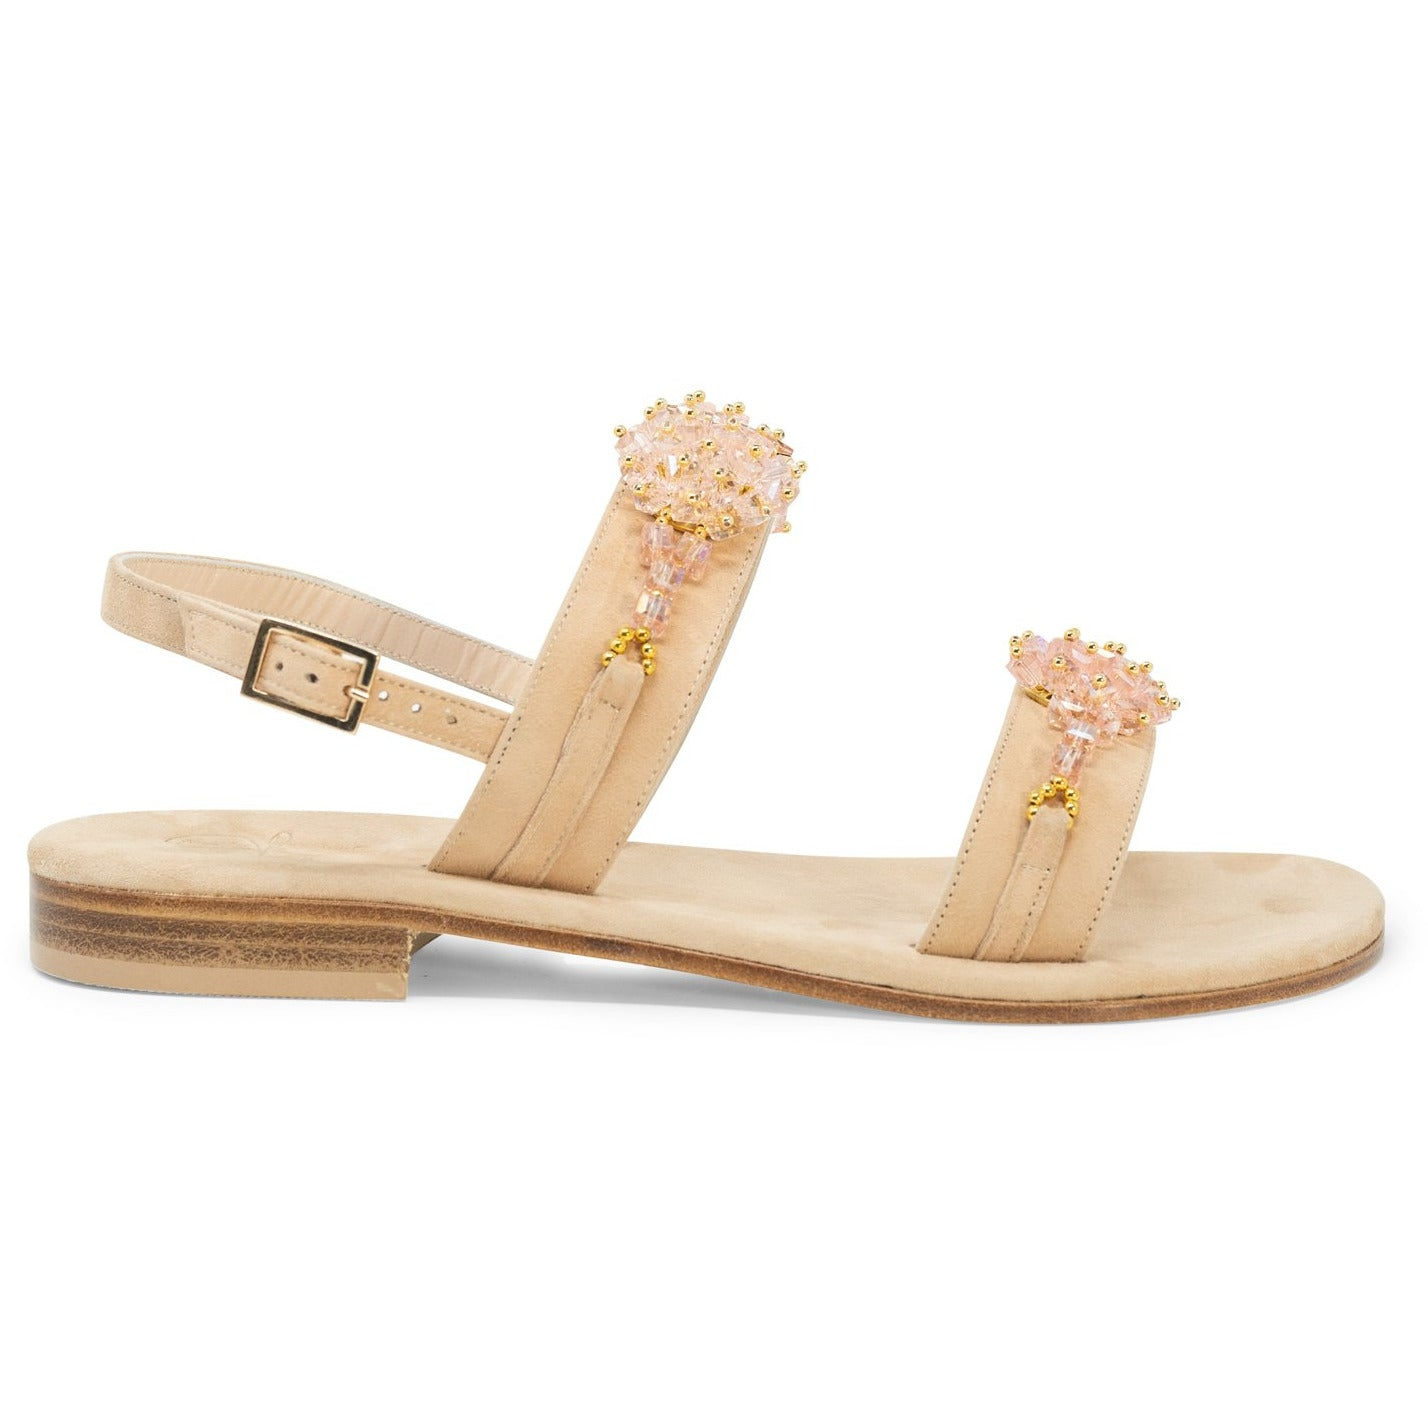 MPOWC6520 T20 Women Sandals - New Spring Summer 2020 Collection